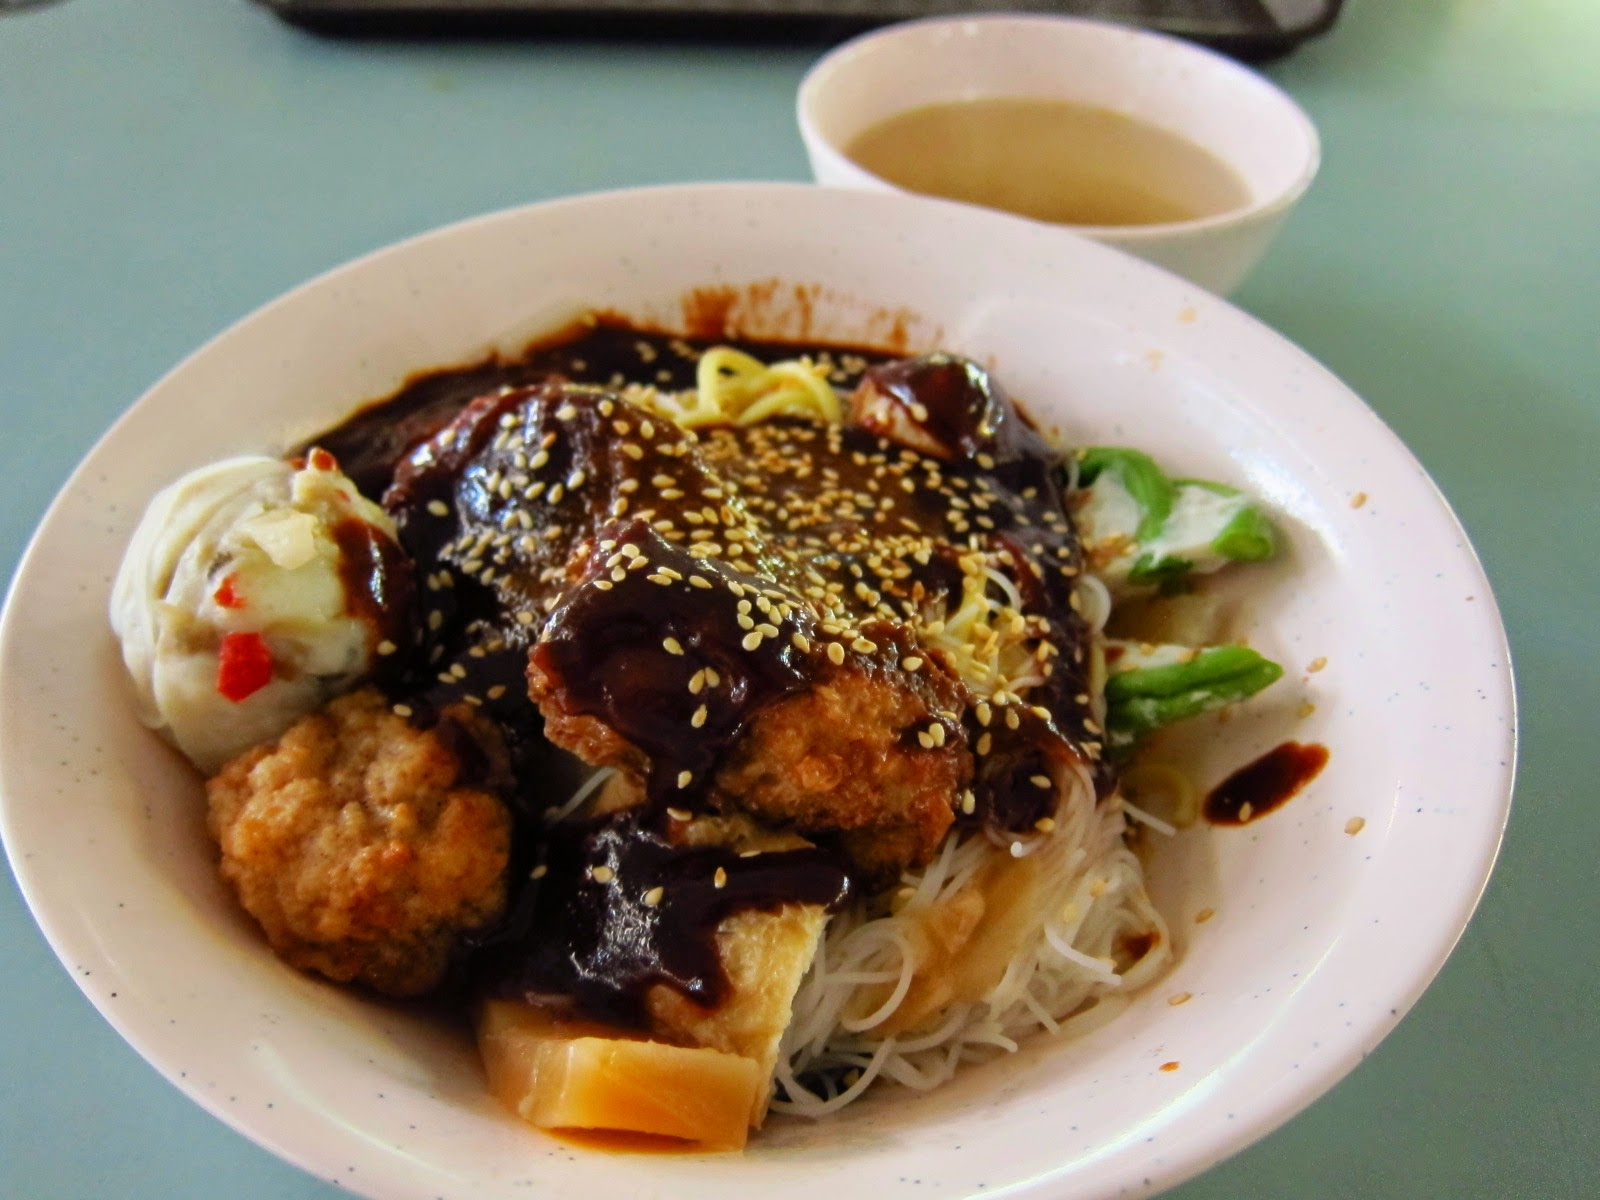 yong tau fu meatballs dry vermicelli sweet brown sauce sesame seeds singapore malaysia traditional hakwer street food